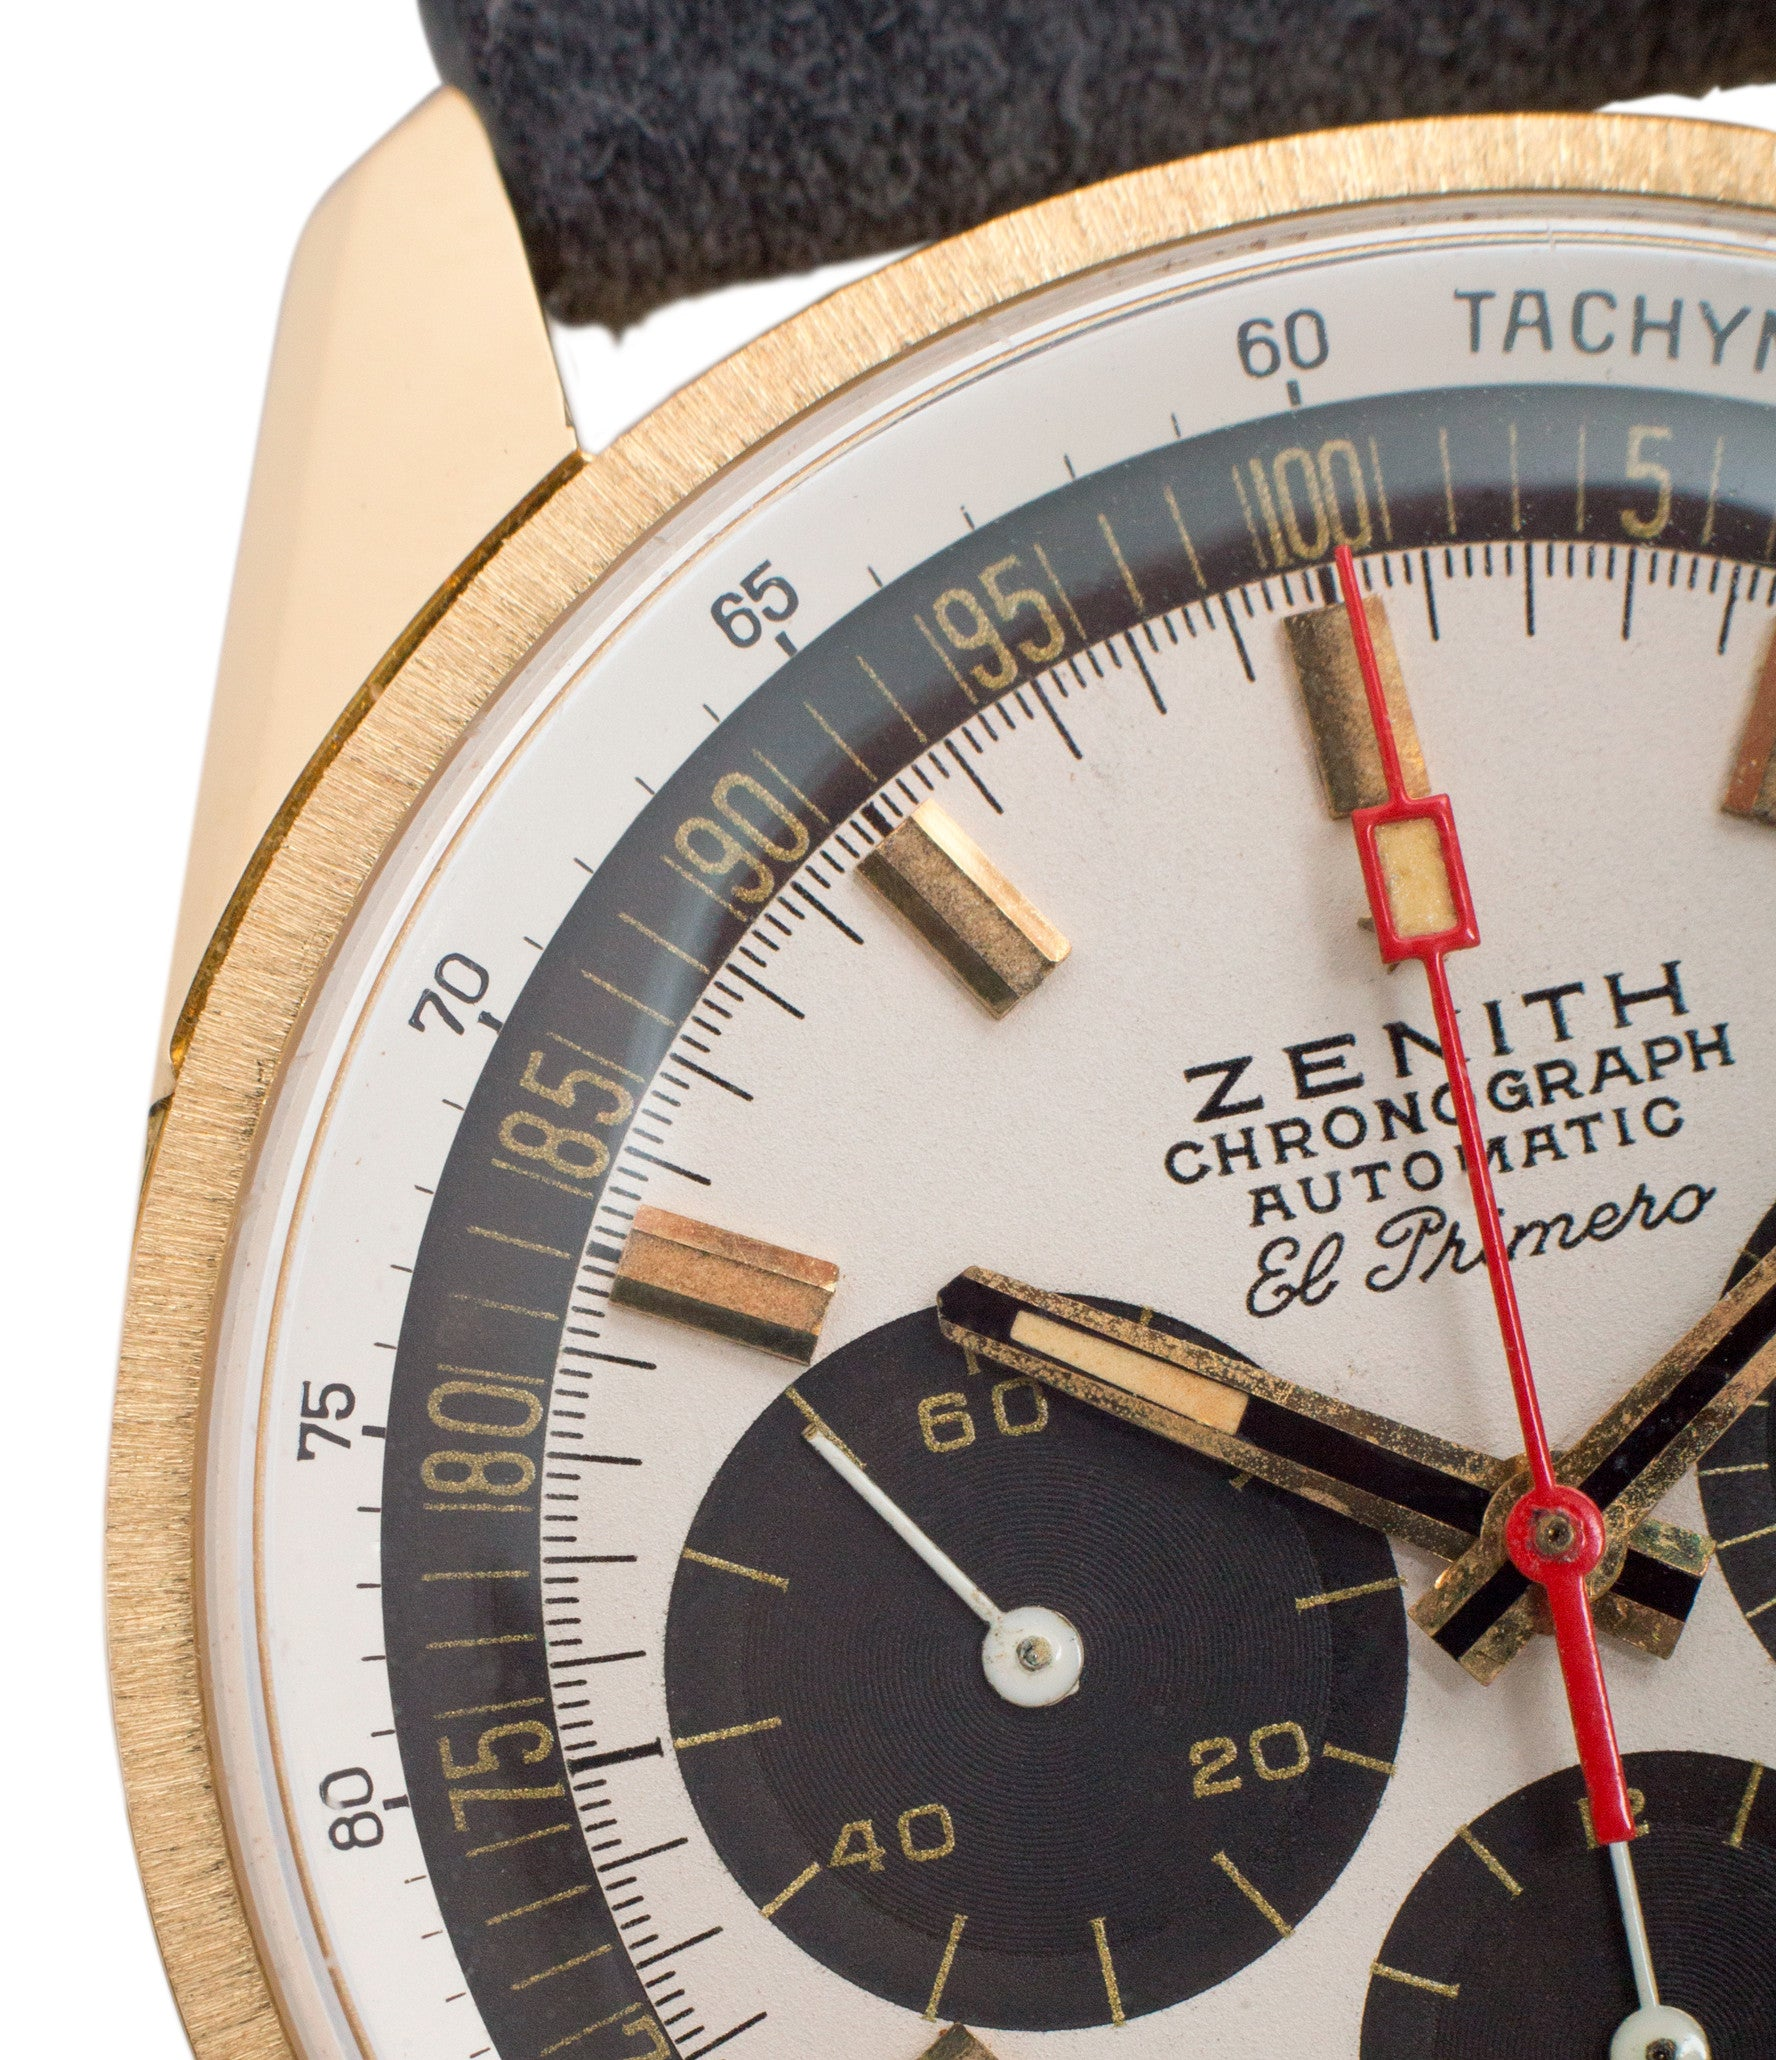 first automatic chronograph Zenith El Primero G381 rare yellow gold vintage chronograph date watch for sale online at A Collected Man London vintage watch specialist